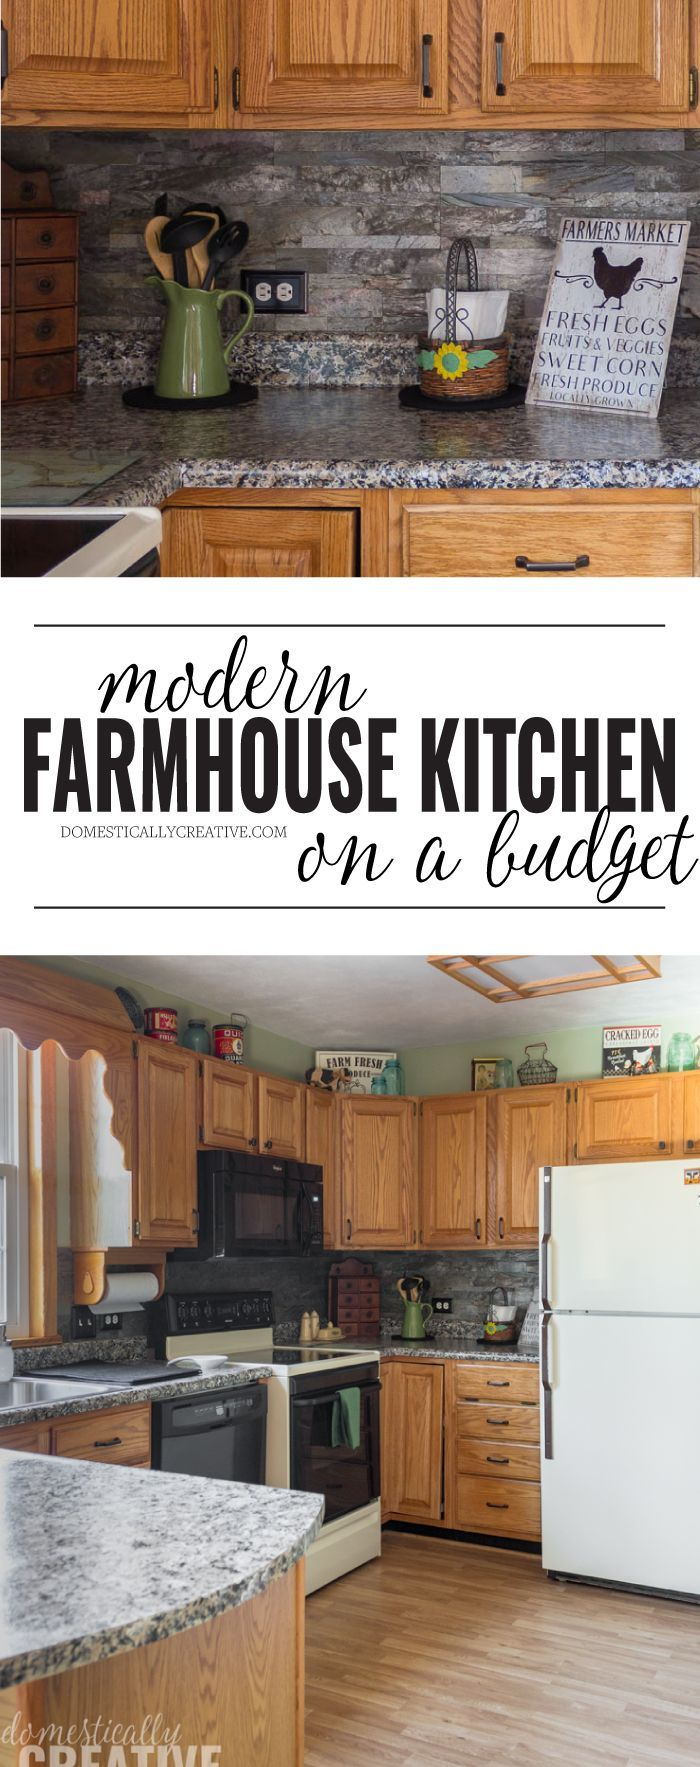 You don't have to spend a ton of money to get the look you want. Give your own kitchen space an upgrade to create this b…